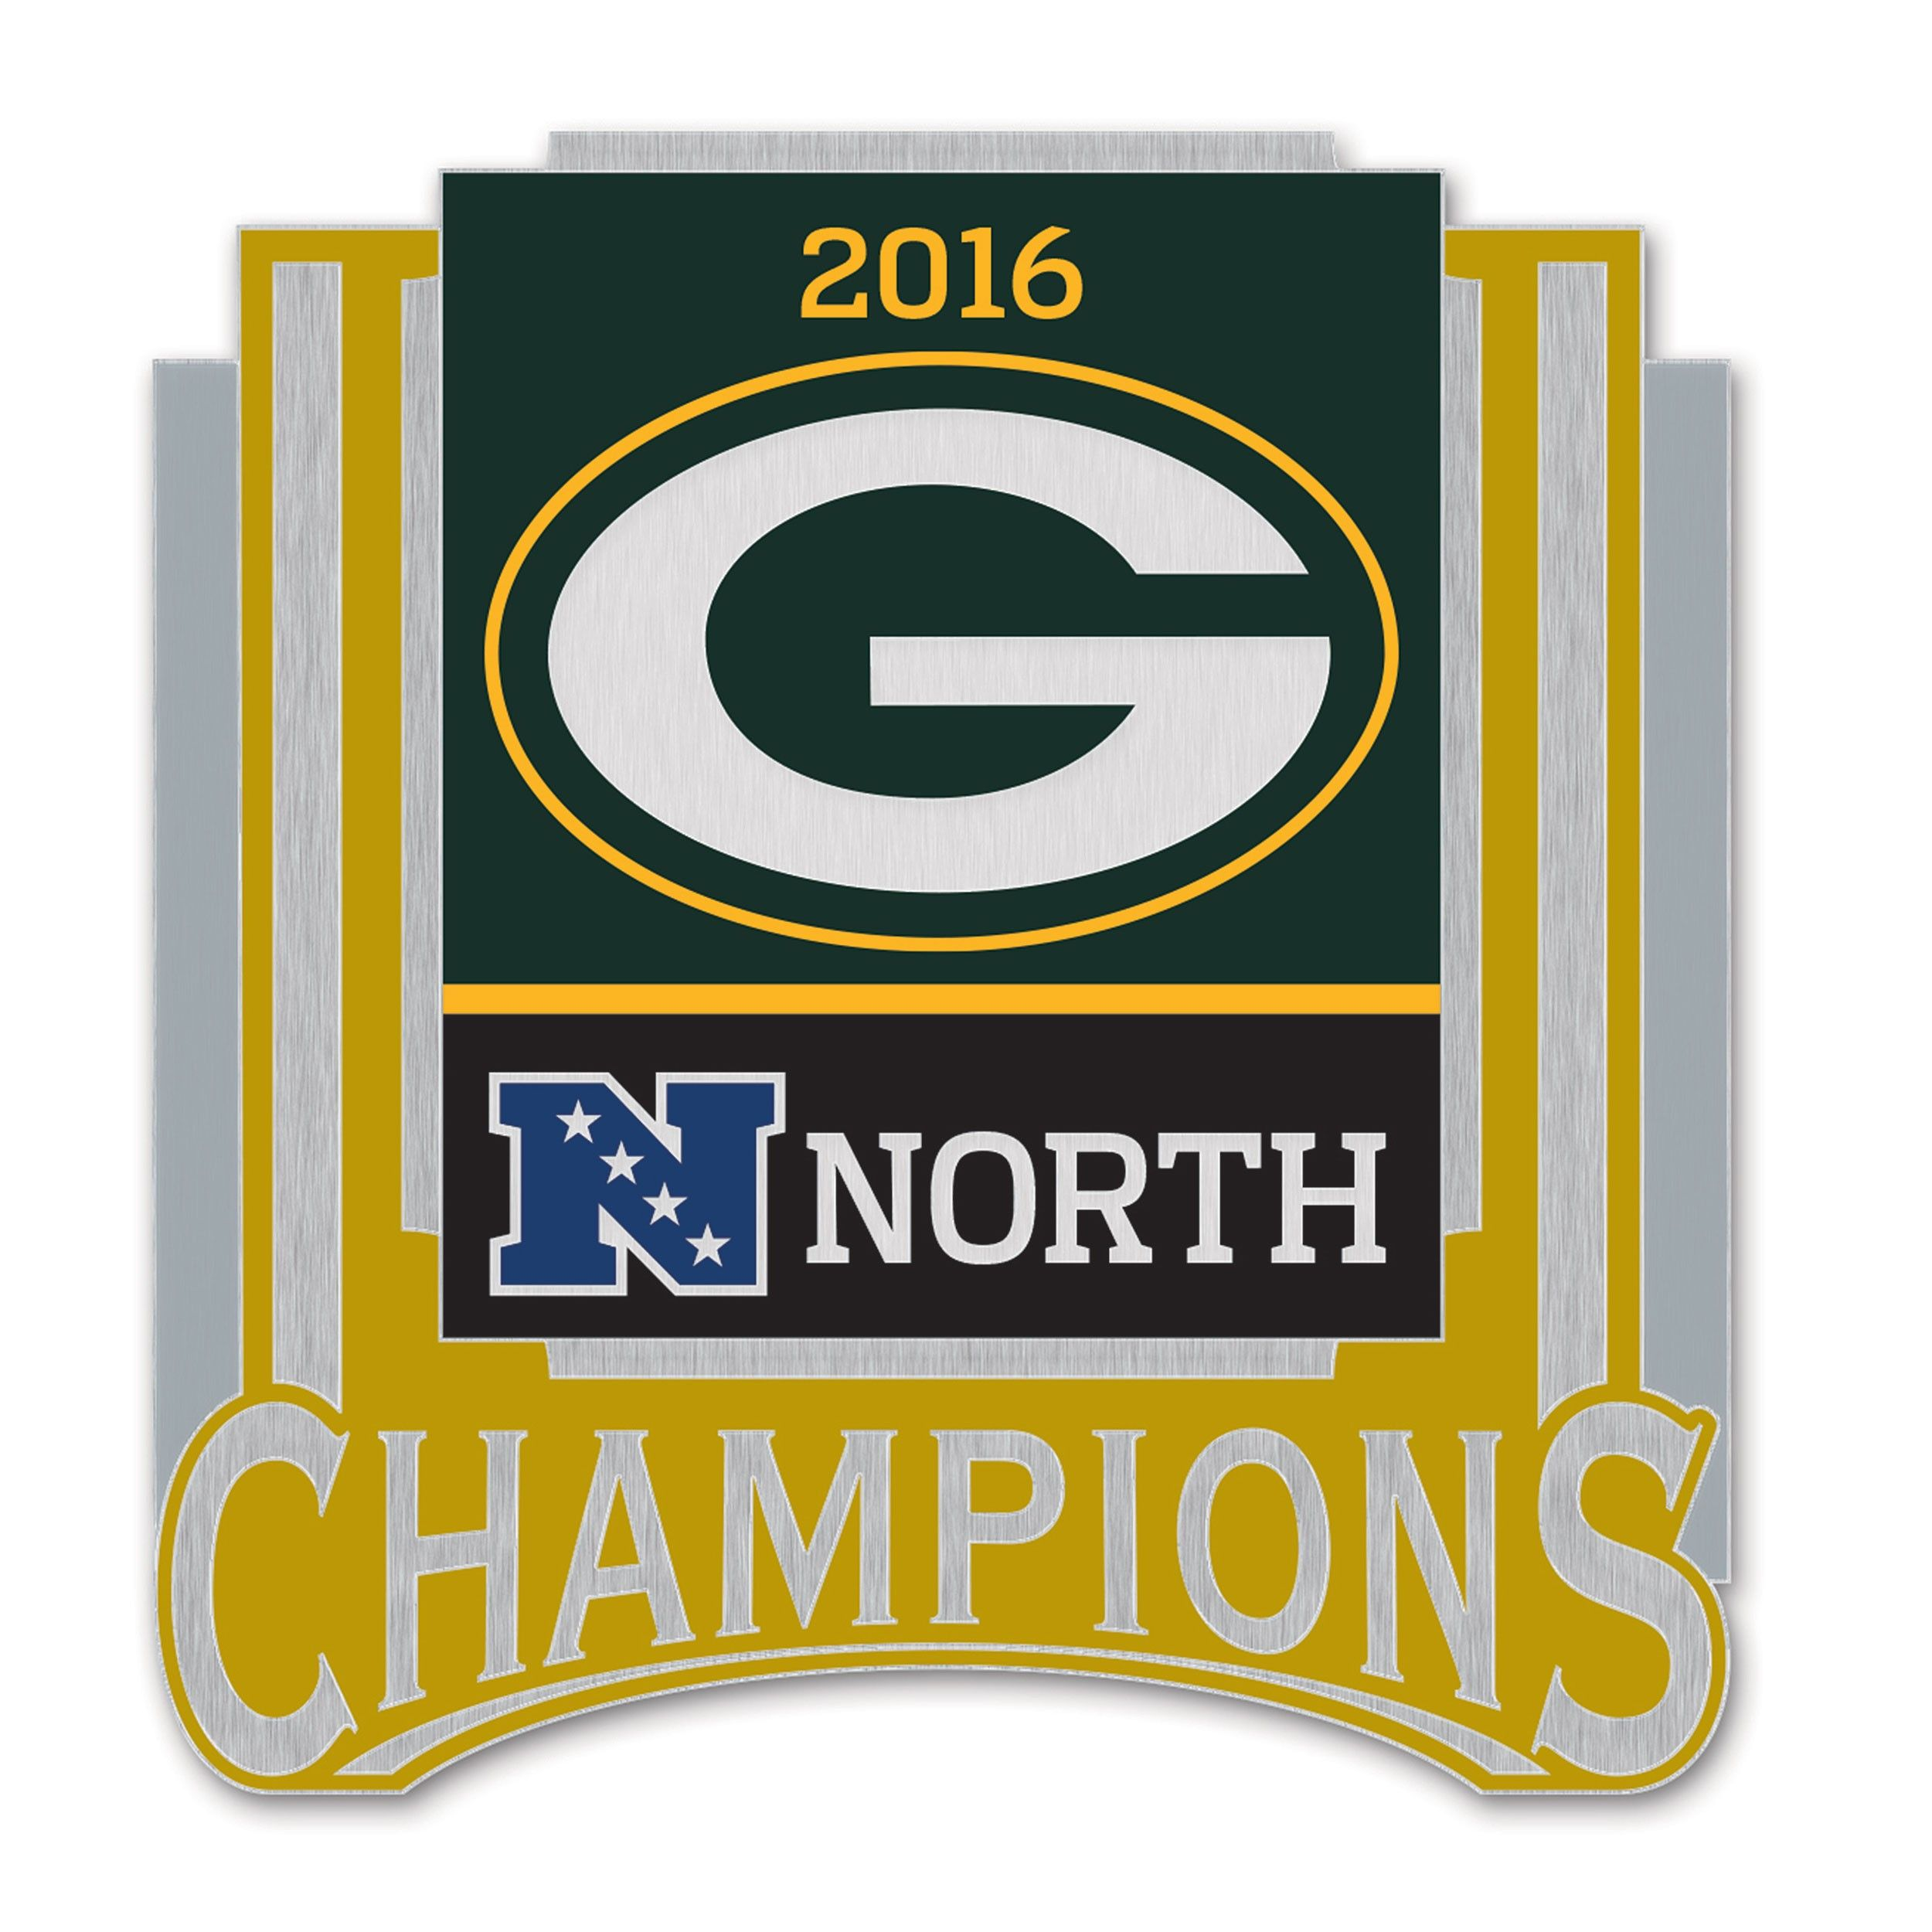 Packers 2016 Nfc North Division Champs Pin Green Bay Packers Green Bay Green Bay Football